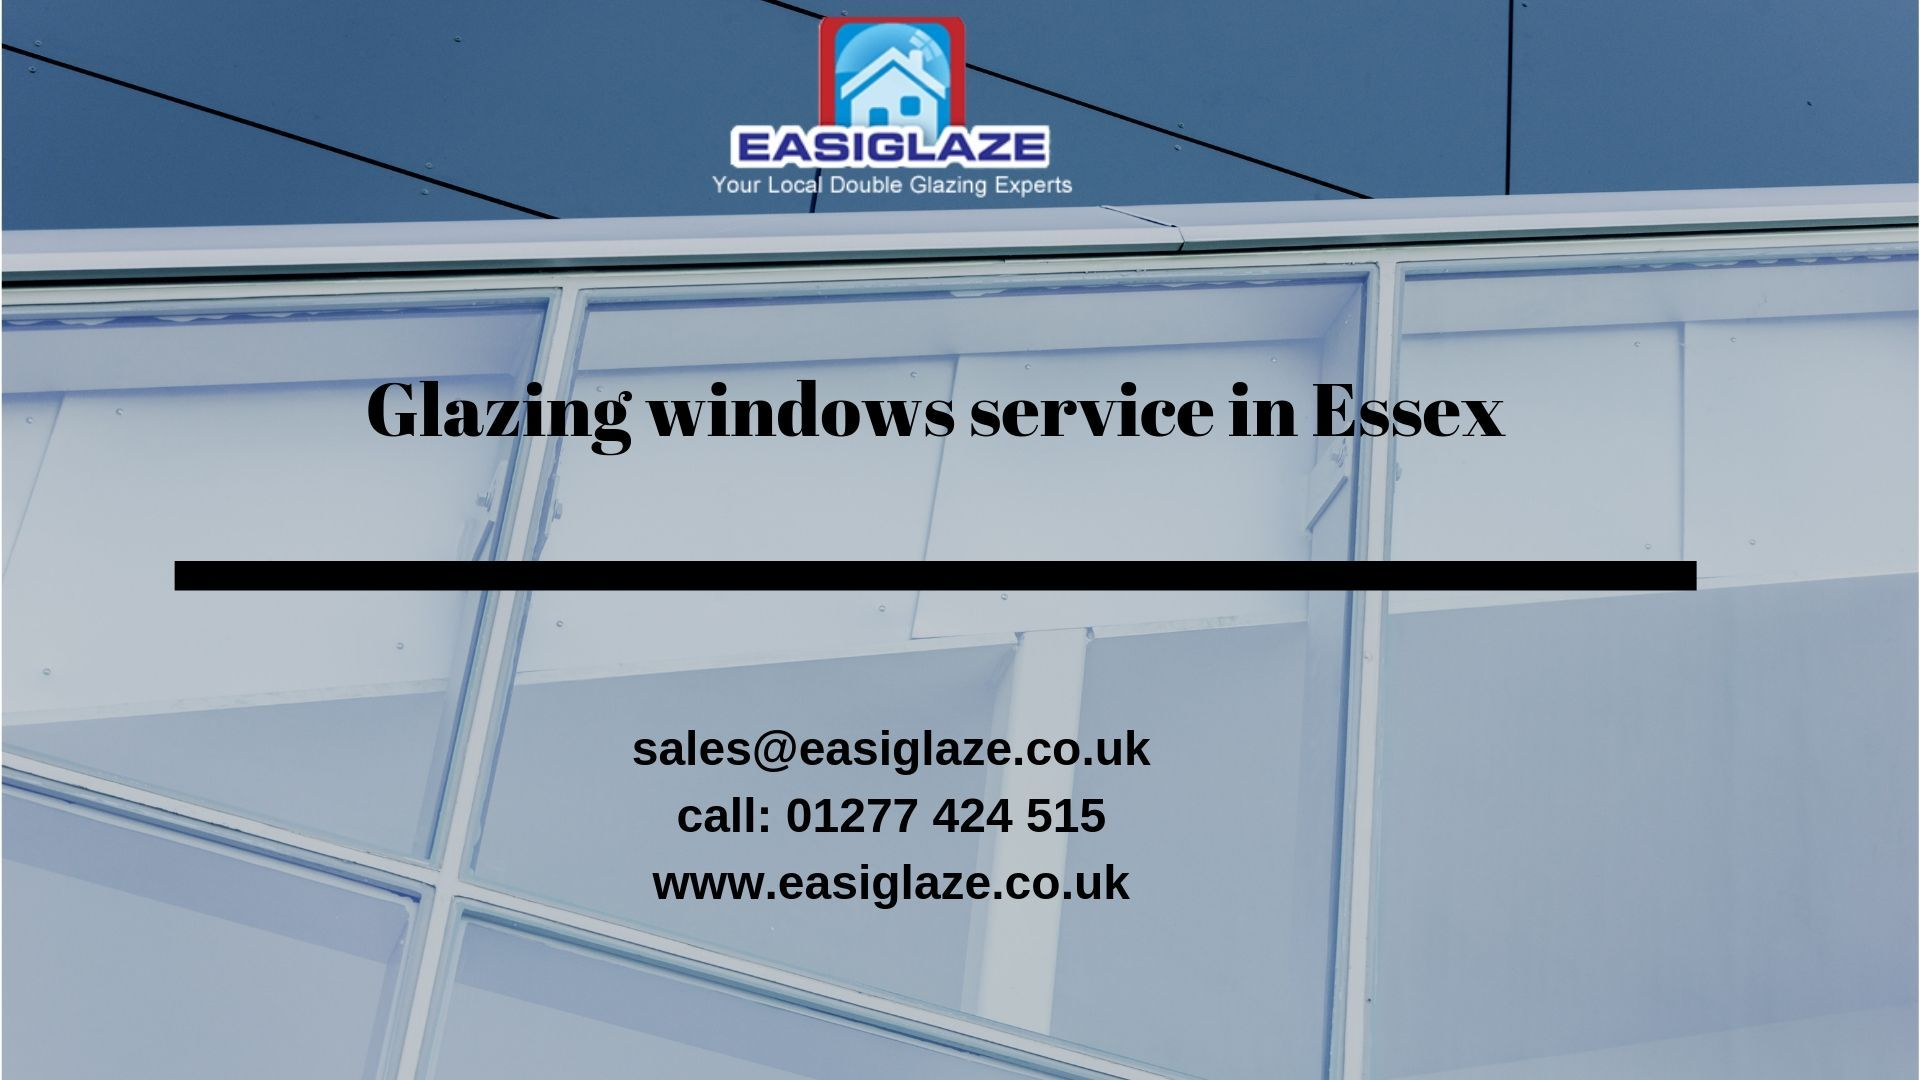 Easiglaze Is A Professional Fensa Registered Double Glazing